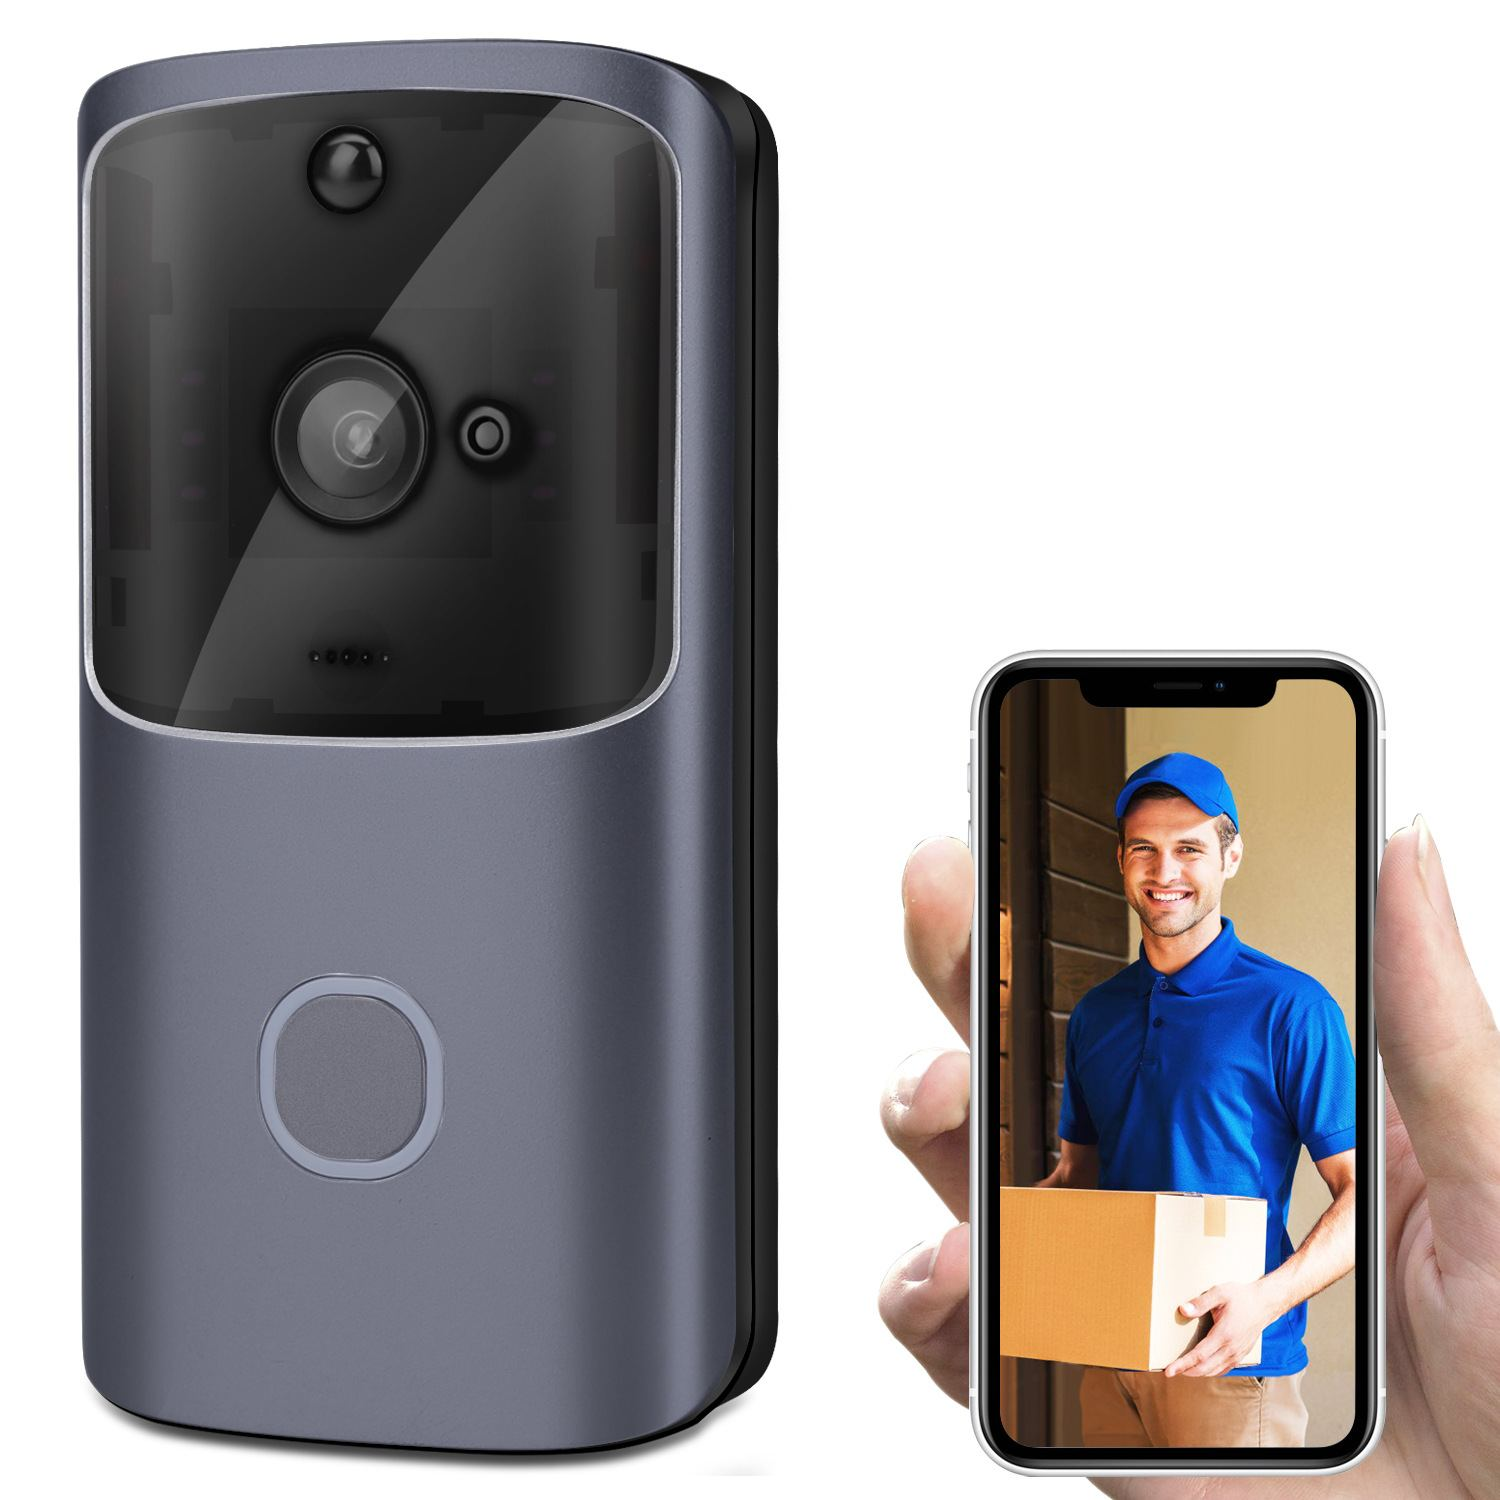 M10 720P HD 2.4G Wireless Wifi Smart Video Doorbell Support TF Card Cloud Storage Home Security Motion Detector Alarm SystemM10 720P HD 2.4G Wireless Wifi Smart Video Doorbell Support TF Card Cloud Storage Home Security Motion Detector Alarm System